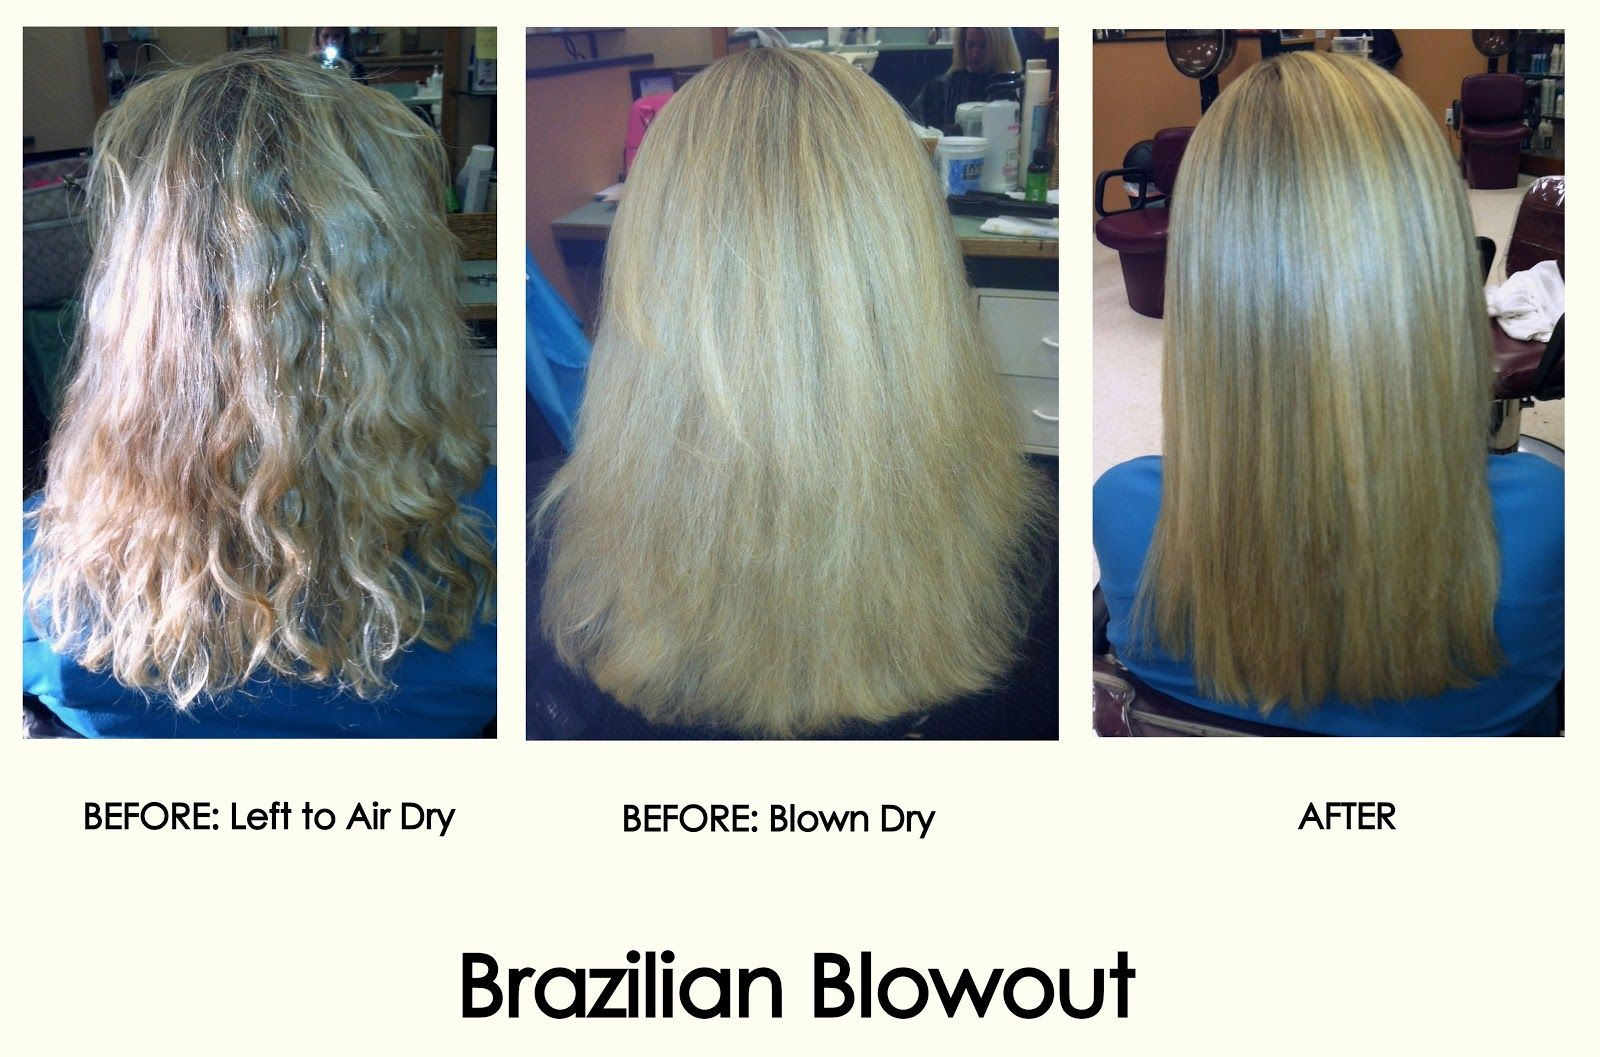 Jahjong Brazilian Blowout Before And After Photos If You Have Naturally Curly Unruly Hair That Takes Foreve Brazilian Blowout Blowout Curls Diy Hairstyles